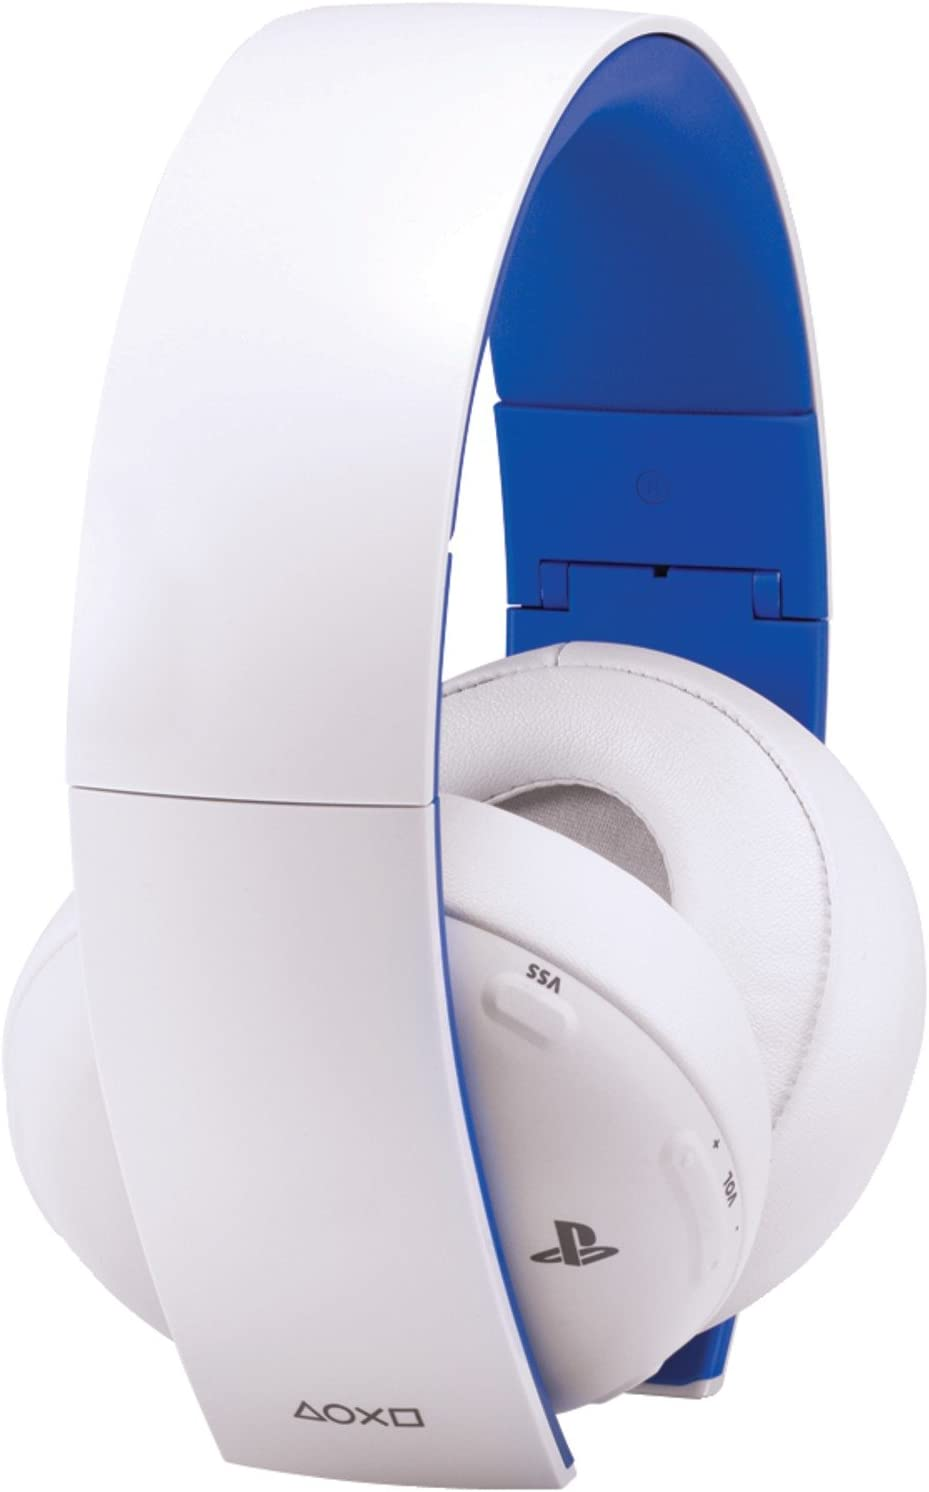 Amazon.com: PlayStation Gold Wireless Stereo Headset ...